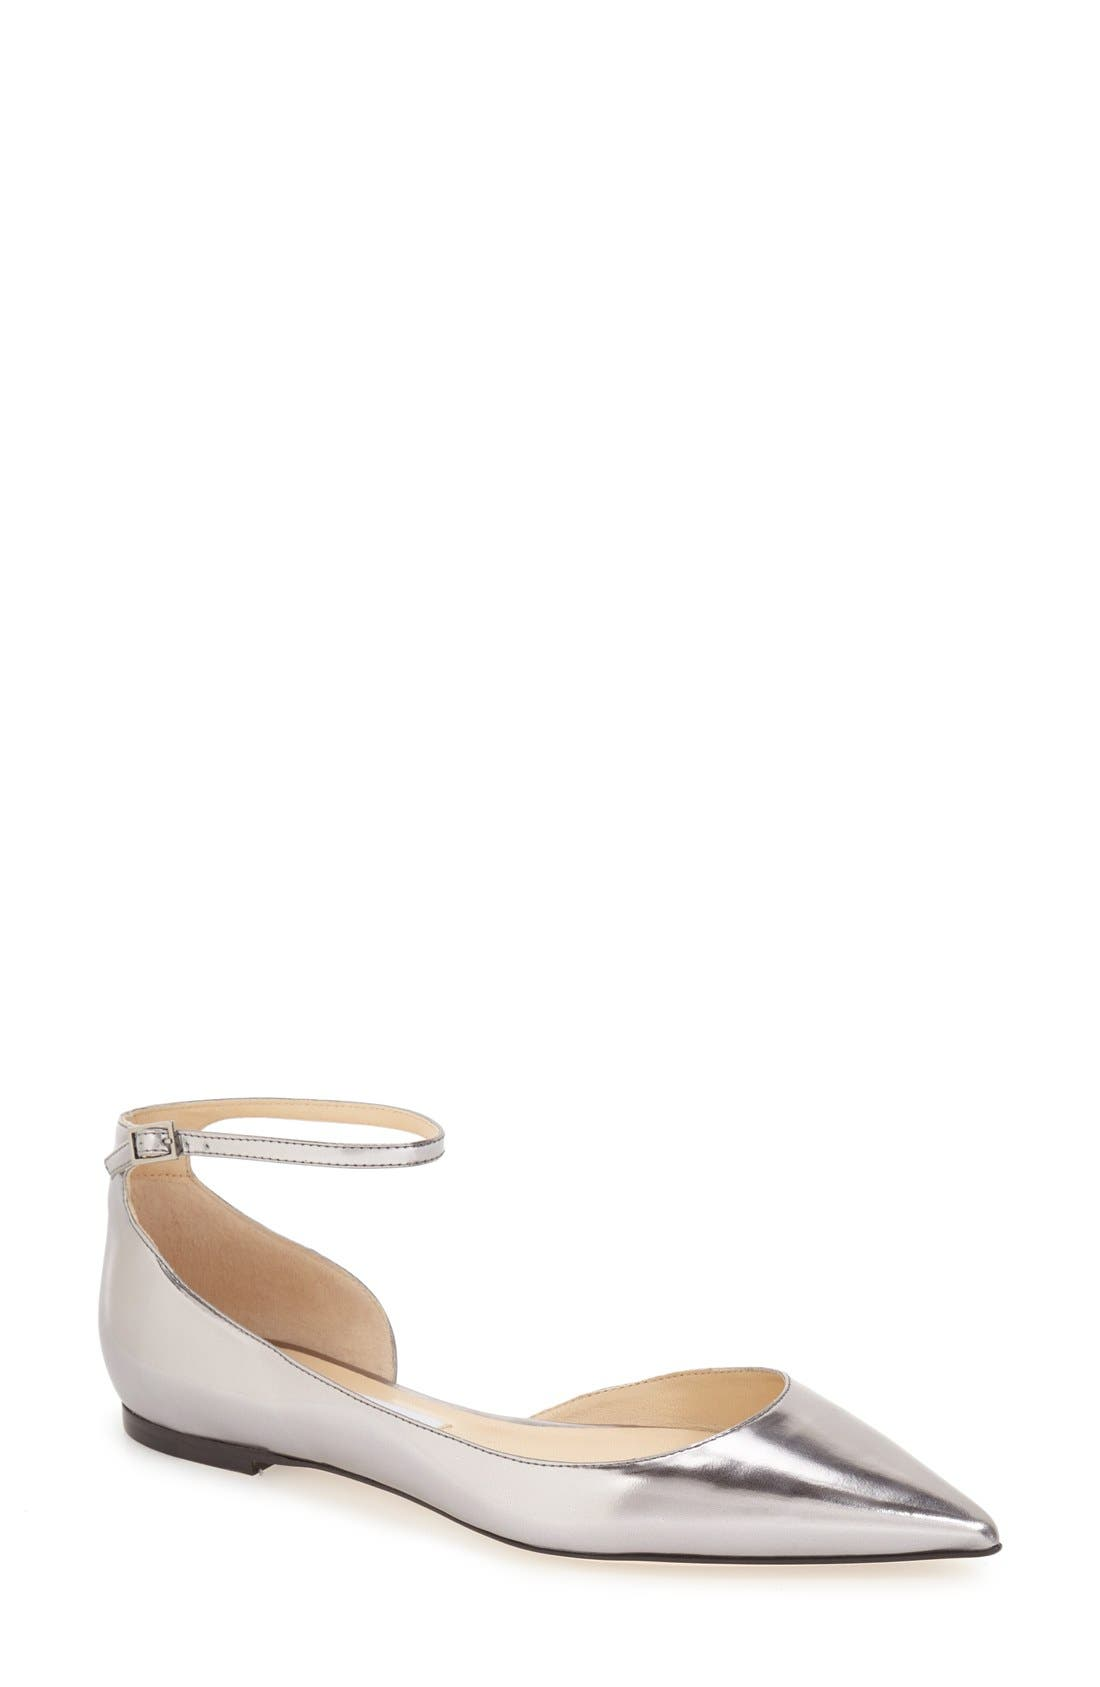 Alternate Image 1 Selected - Jimmy Choo 'Lucy' Flat (Women)